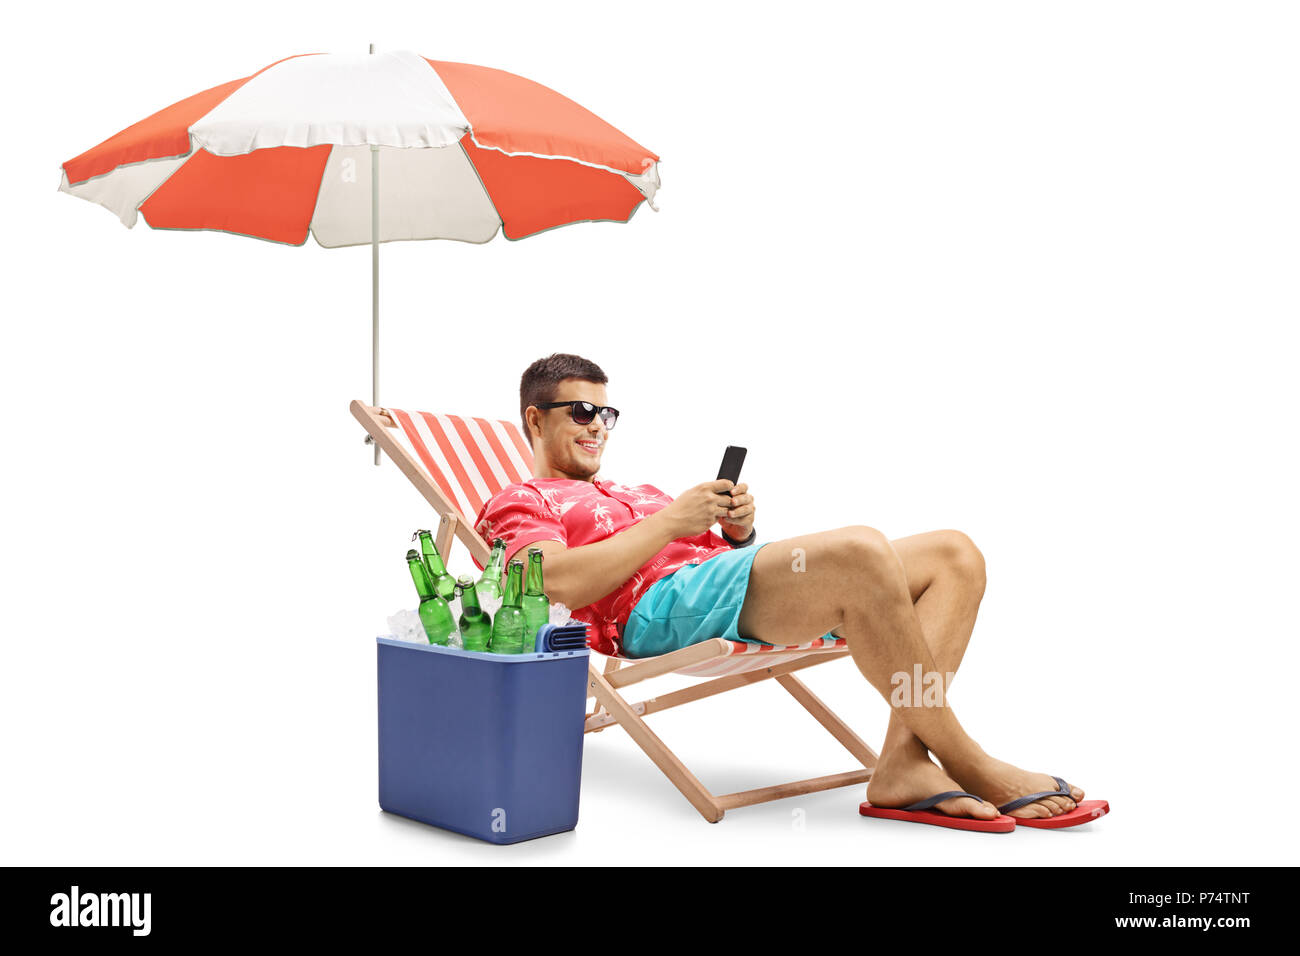 Tourist with a phone sitting in a deck chair with an umbrella next to a cooling box isolated on white background - Stock Image